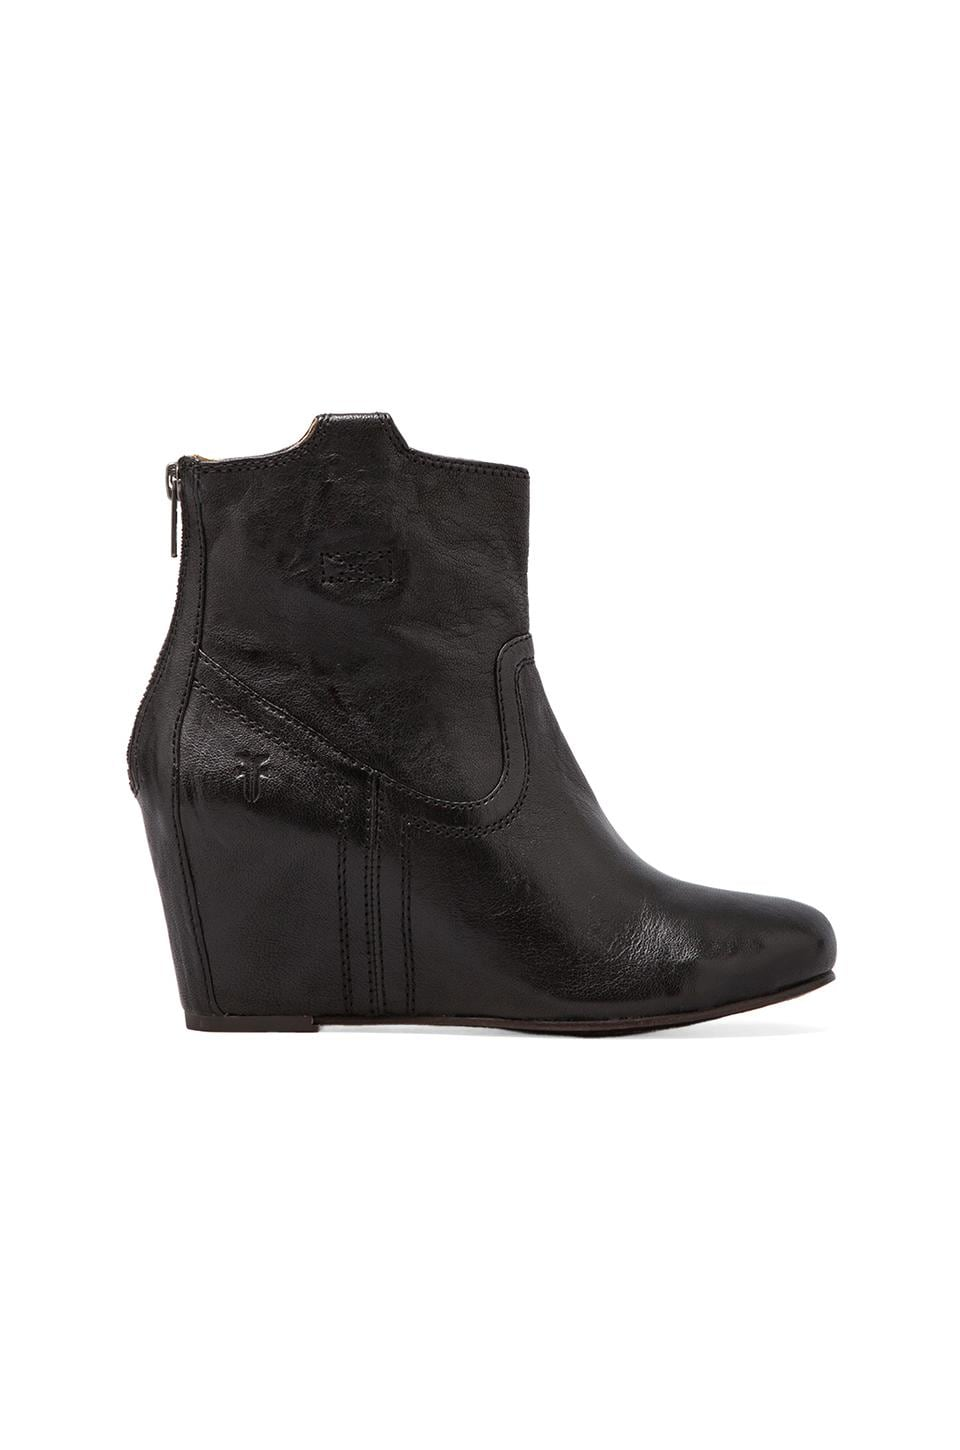 Frye Carson Wedge Bootie in Black